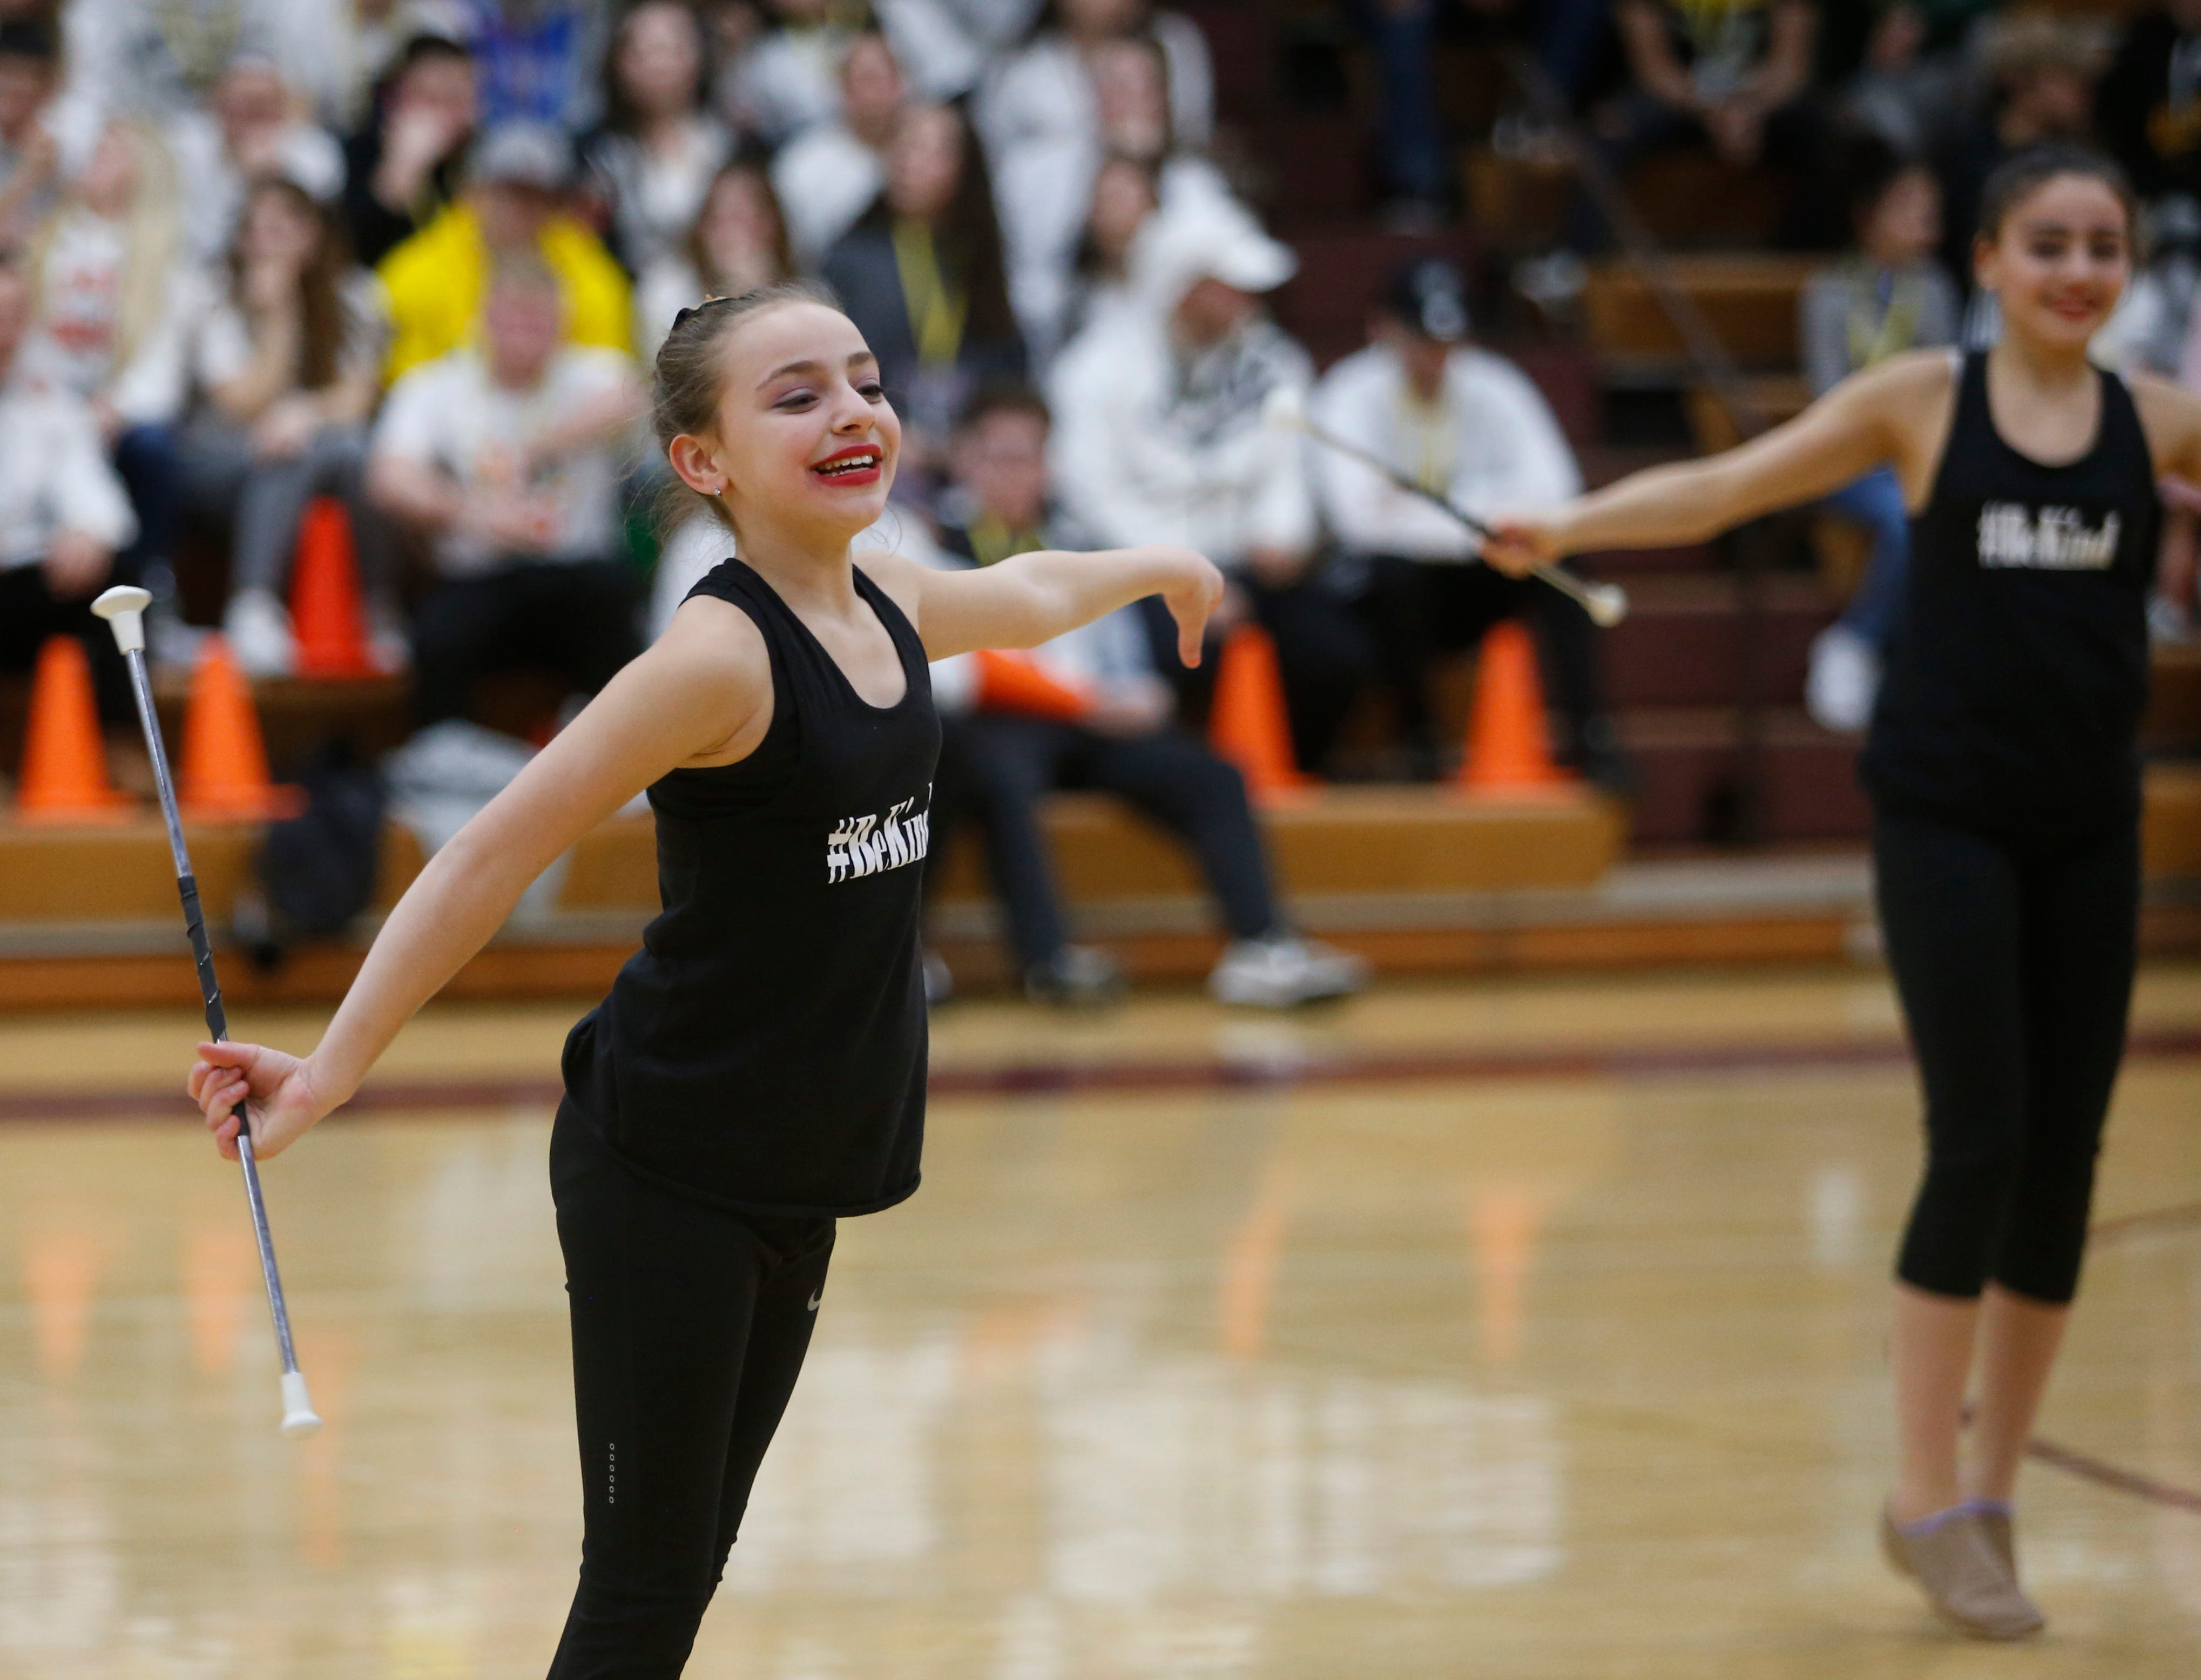 Baton twirling during halftime at Thursday's playoff game between Arlington and New Rochelle in Freedom Plains on February 21, 2019.